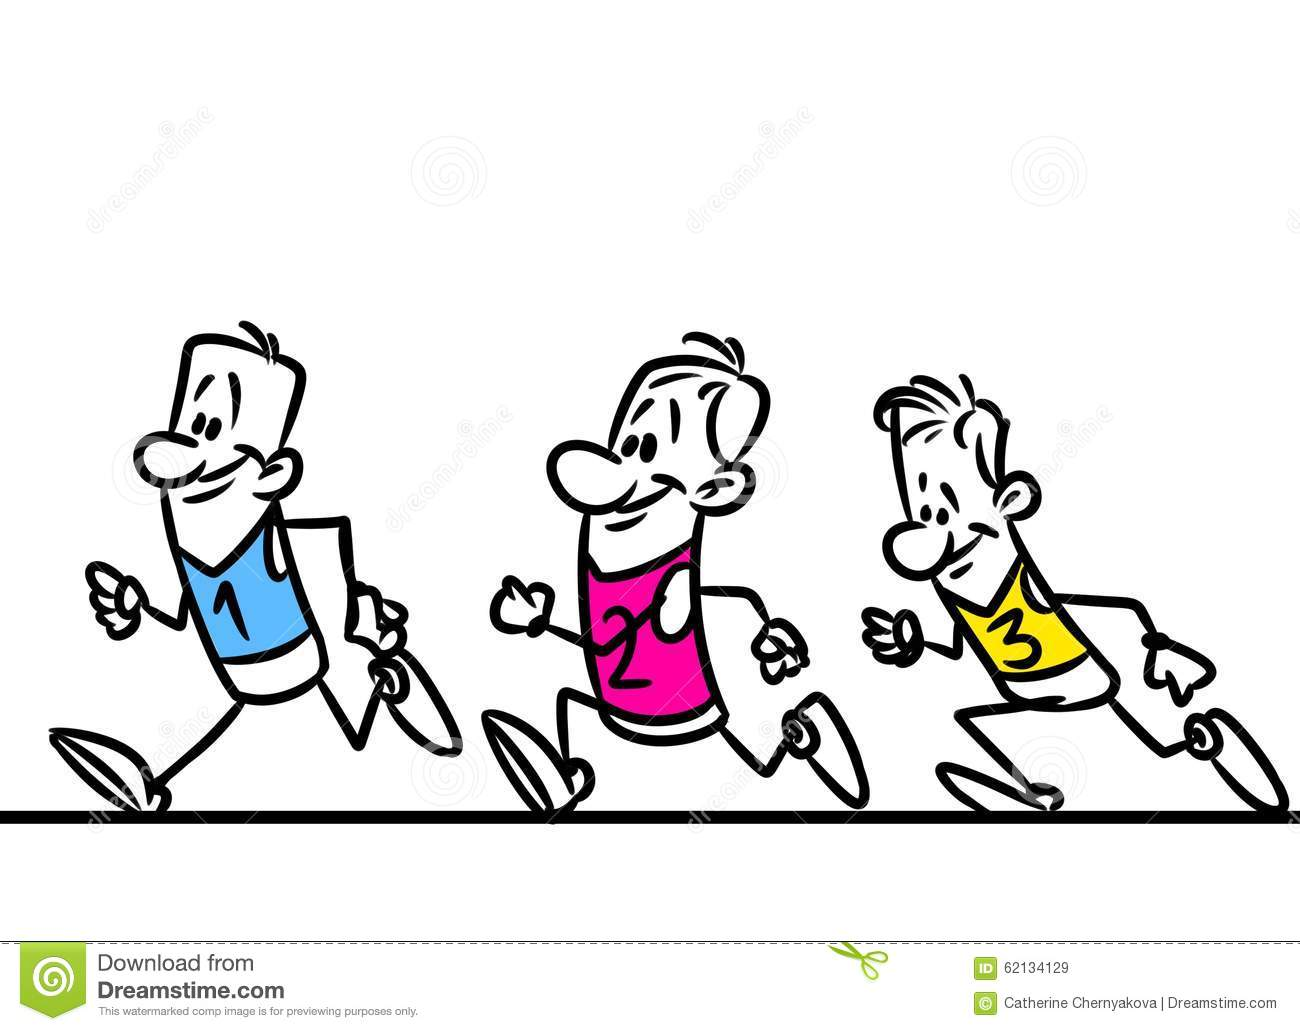 Sports Running Marathon cartoon illustration funny character.